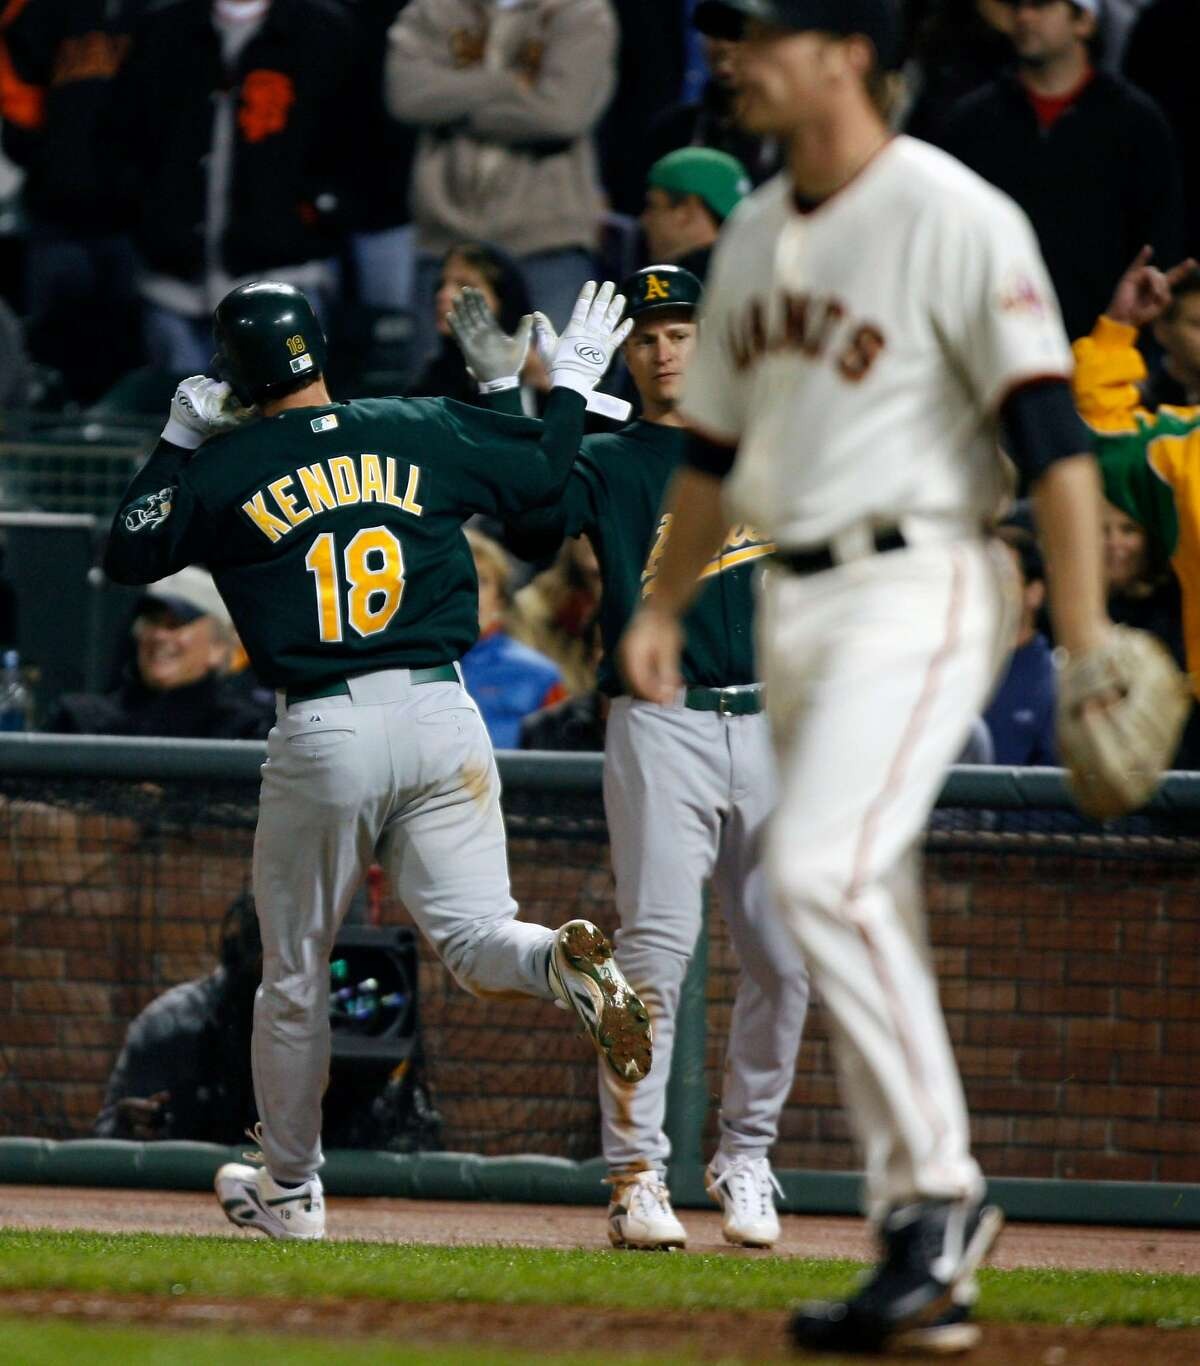 GIANTS_39611.JPG A'S Jason Kindall is greeted after crossing home plate scoring one of two winning runs as they defeated the Giants 5-3. San Francisco Giants vs. Oakland Athletics (June 8) (cq) SUBJECT) Lance Iversen / The Chronicle Photo taken on 6/8/07,in SAN FRANCISCO, CA. Ran on: 06-09-2007 Barry Bonds tells Noah Lowry (right) where to go, while Daniel Ortmeier (left), who had plenty of ground to cover, smiles.